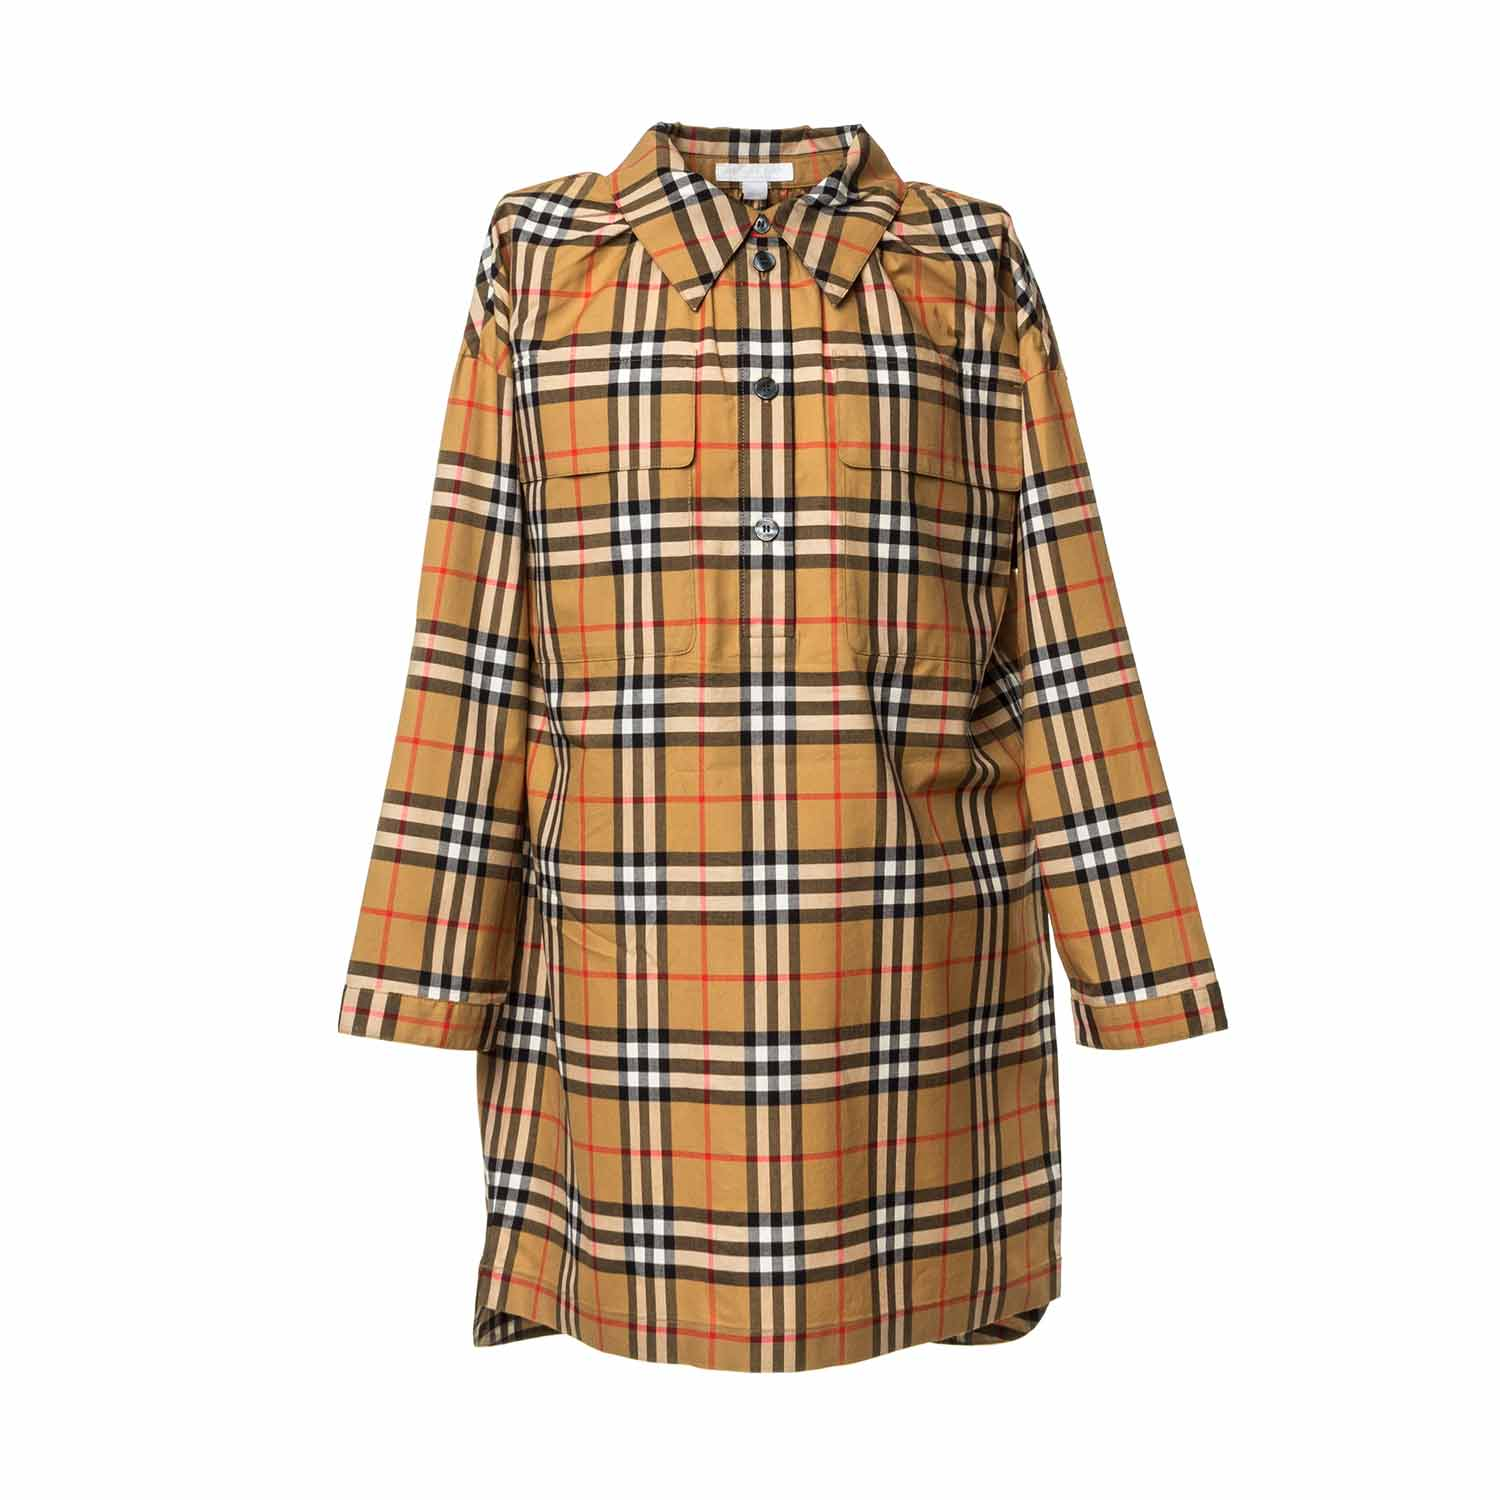 648c5a68729e Burberry - Girl Vintage Check Shirt Dress - annameglio.com shop online